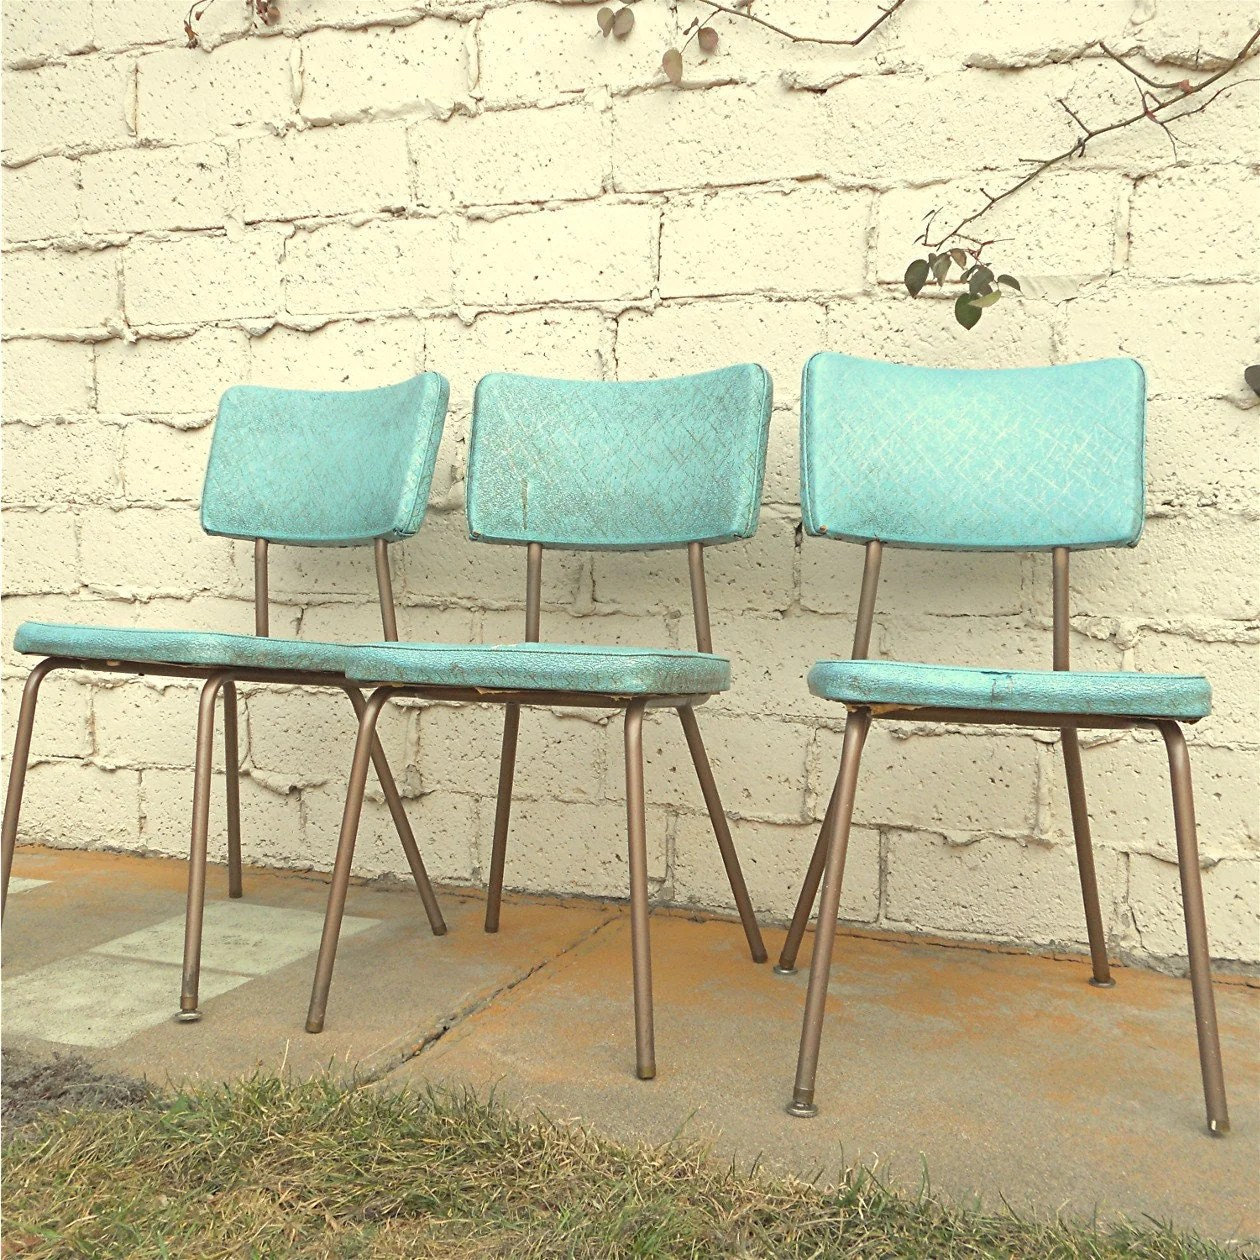 Retro Kitchen Chairs Vintage Kitchen Chairs Three Vinyl Turquoise Chairs Local